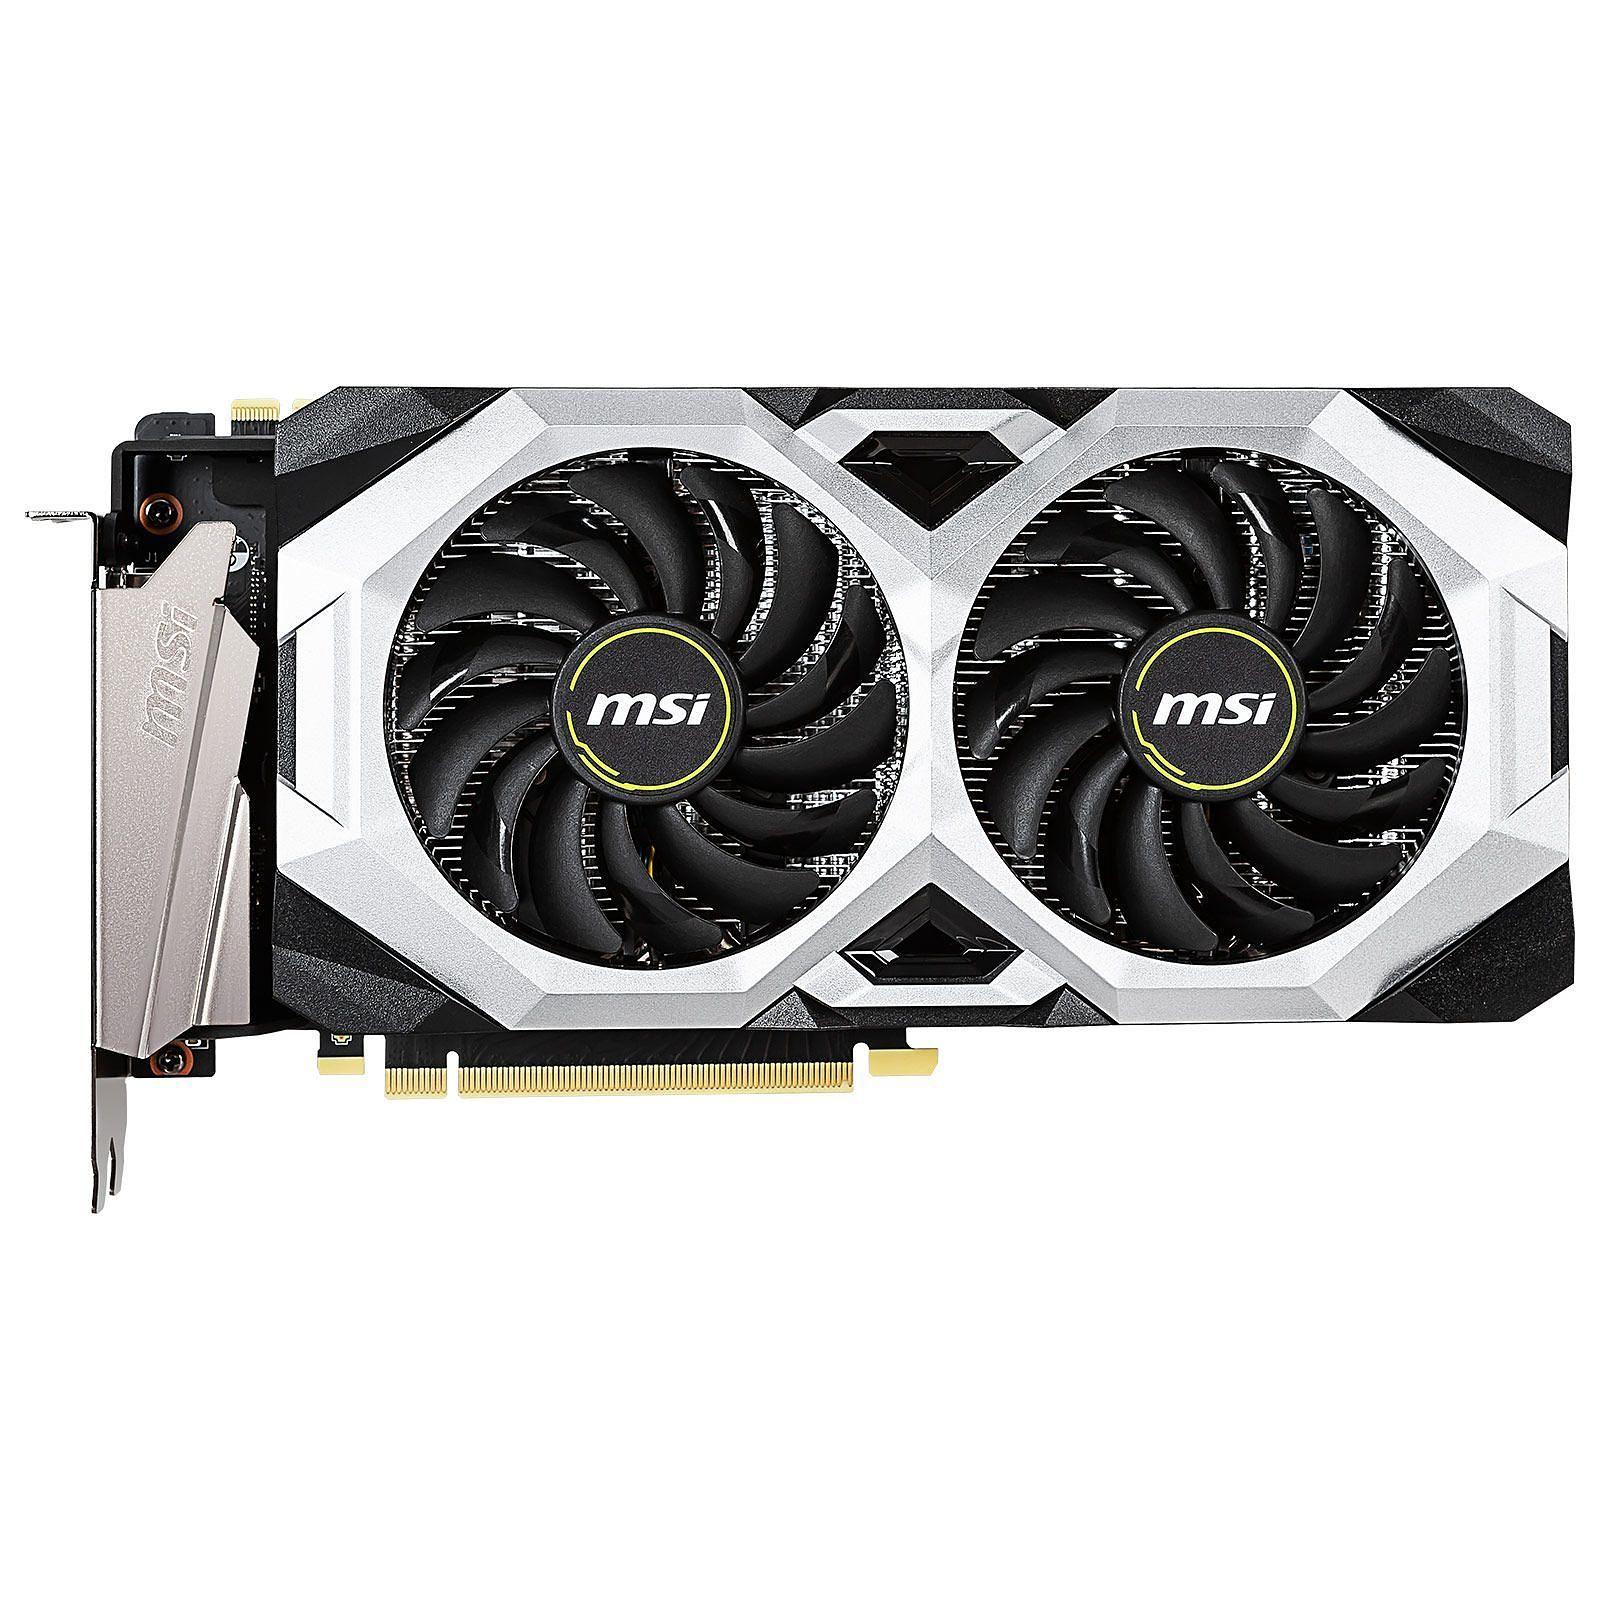 Carte graphique MSI RTX 2070 Super Ventus OC 8Go DDR6 PCIe 3.0, informatique reunion, informatique ile de la Réunion 974